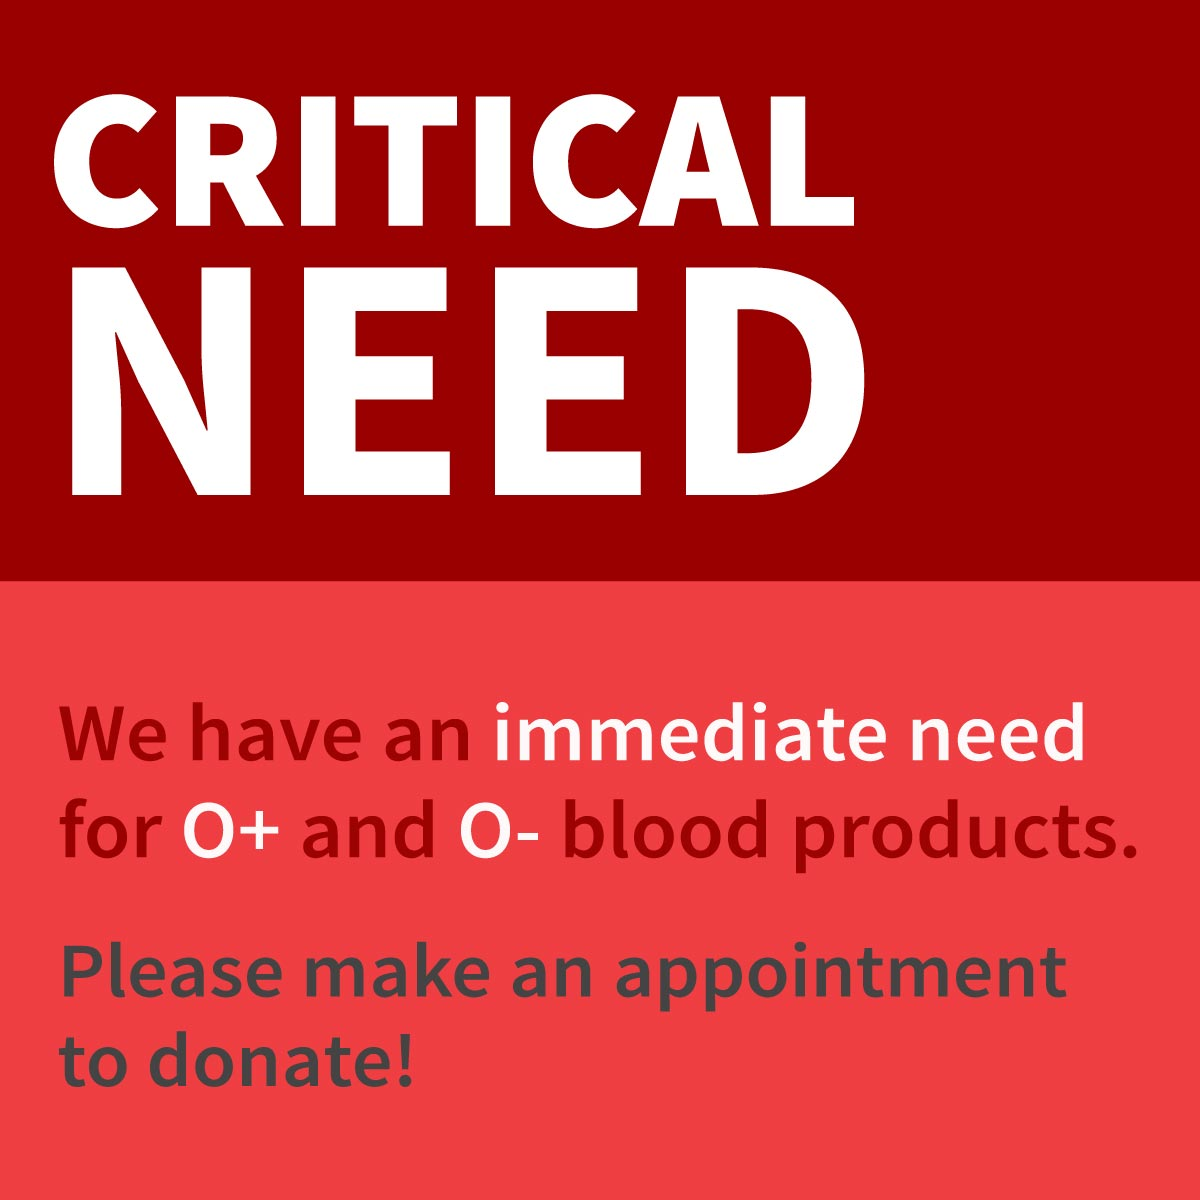 Urgent need for O type blood products